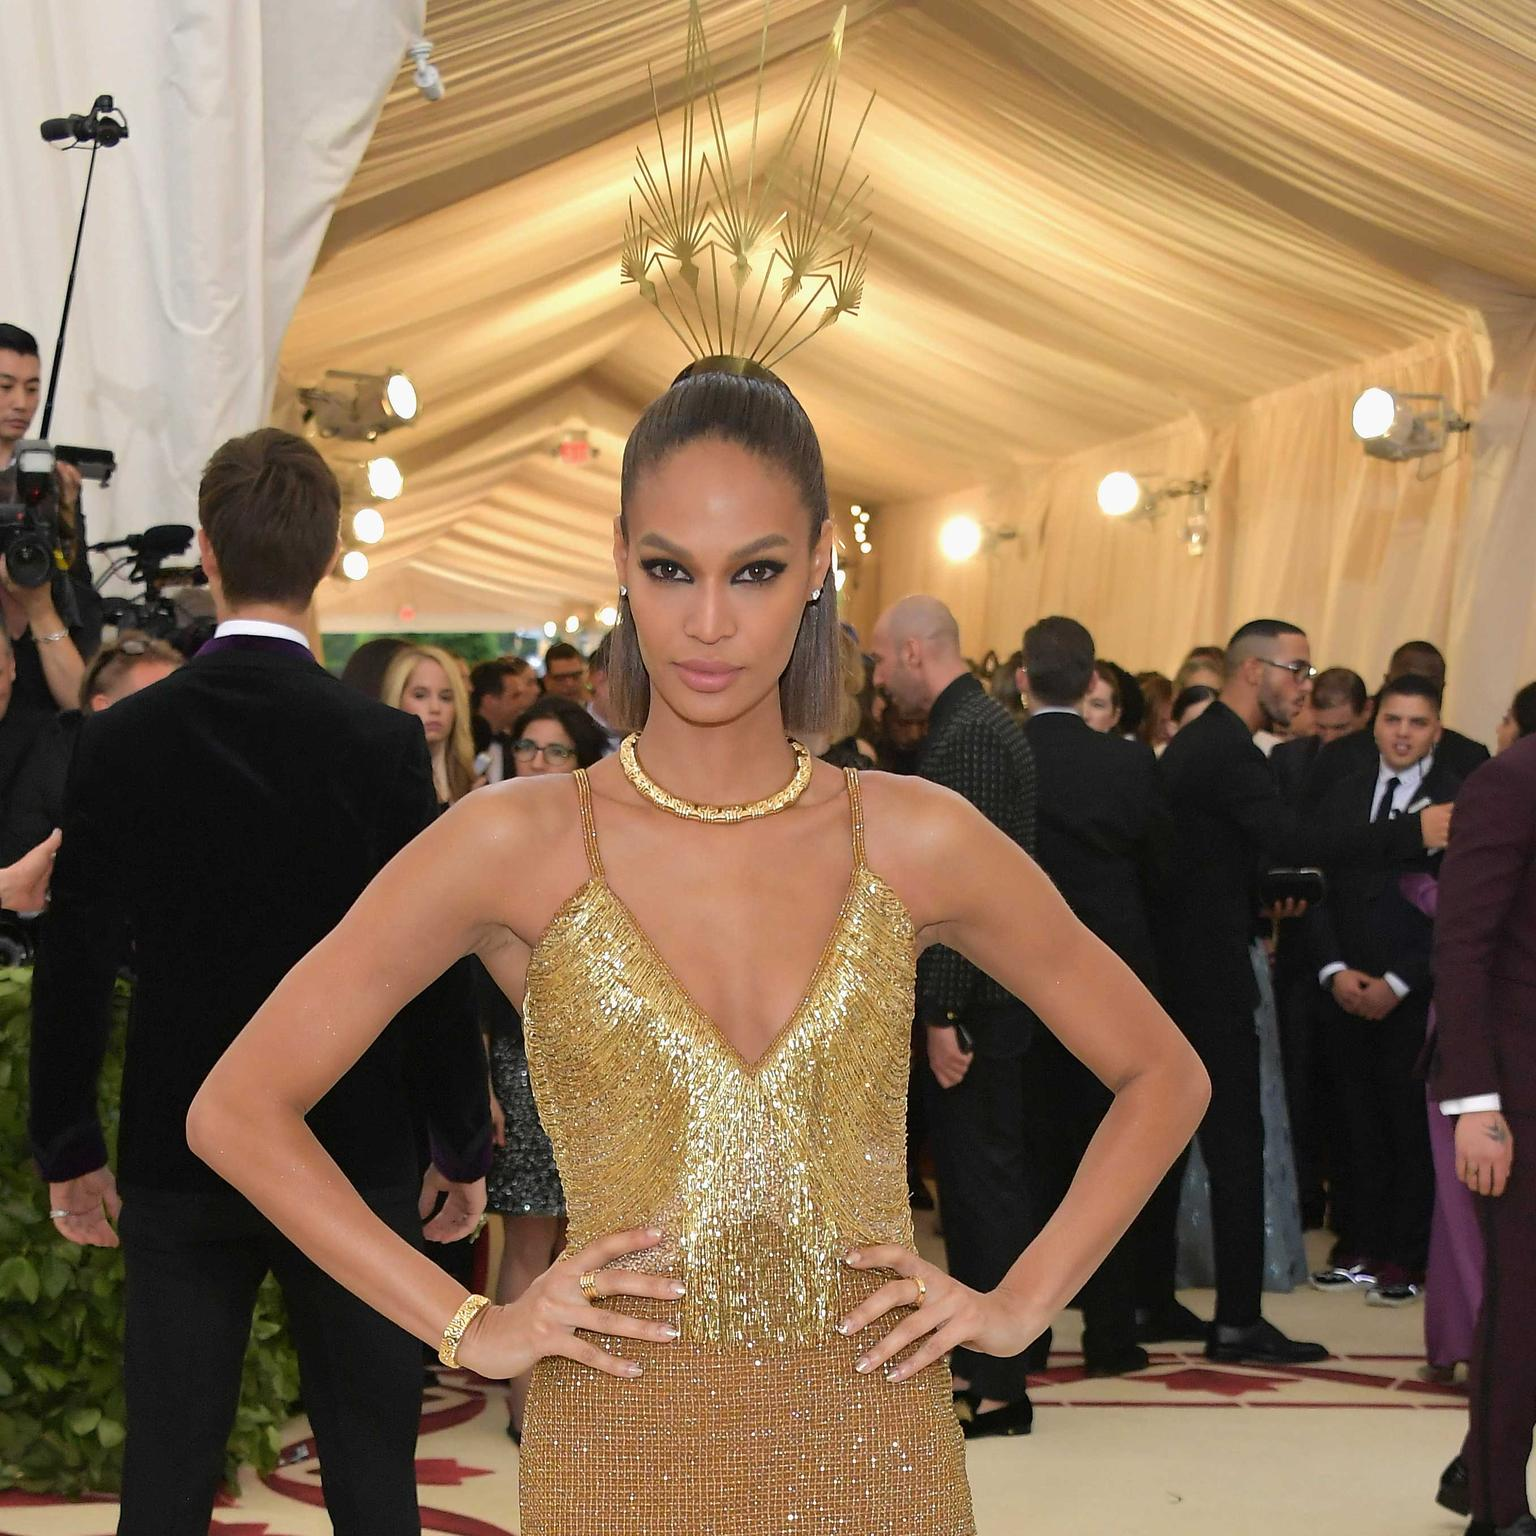 Joan Smalls in Bulgari Parentesi Heritage necklace and bracelet in yellow gold at Met Gala 2018. Credit: Getty Images